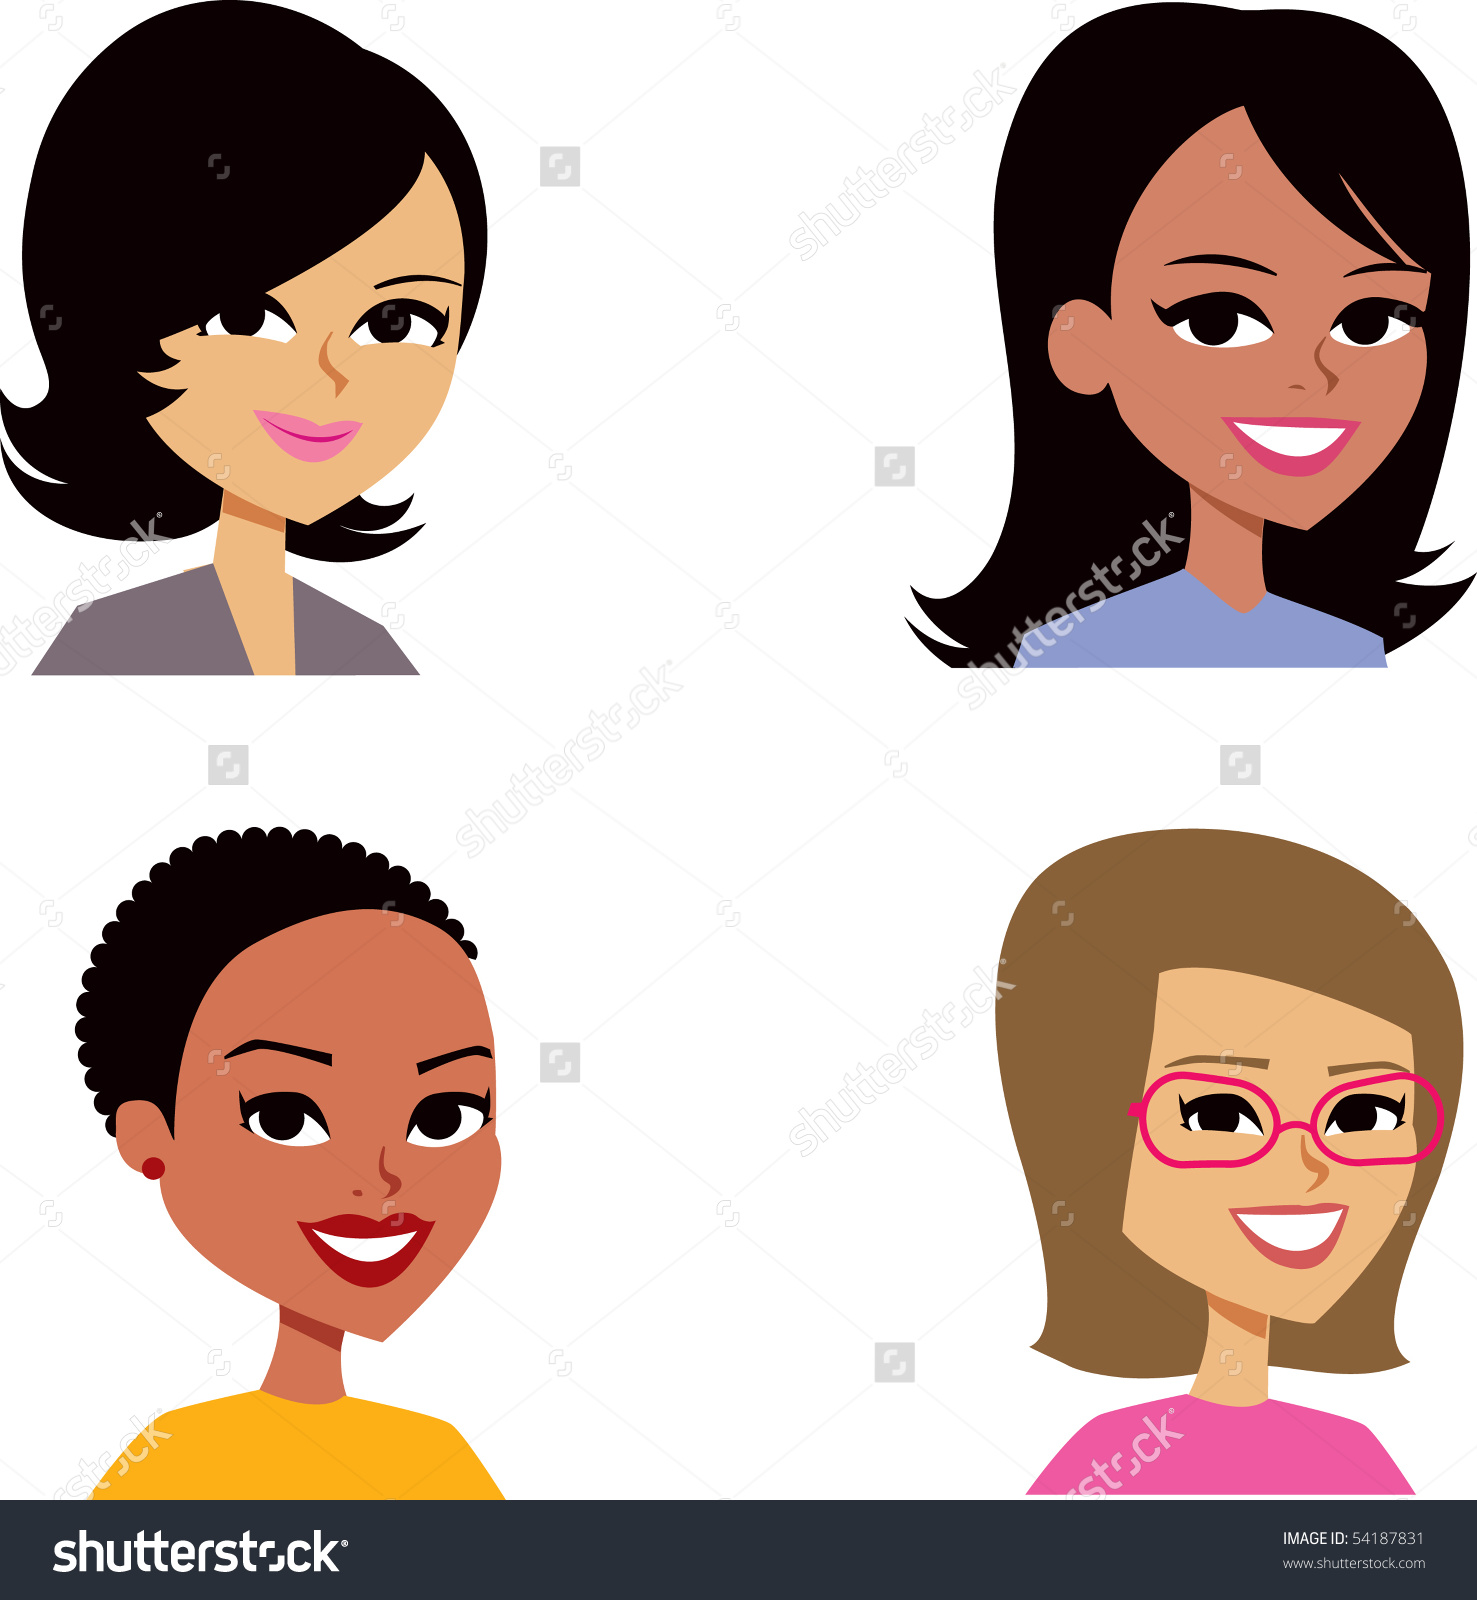 Woman avatar clipart.